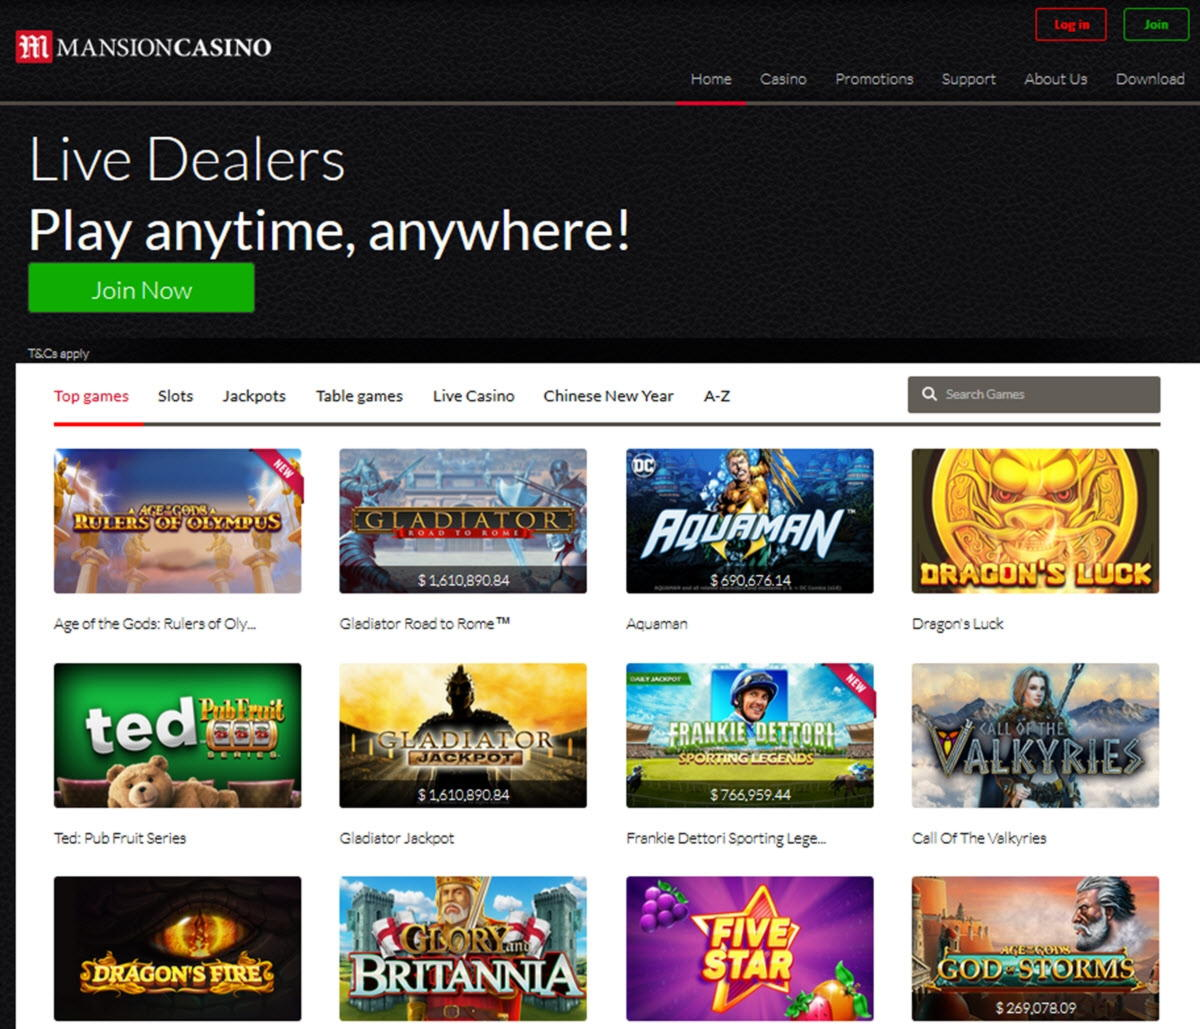 85 Free Spins no deposit casino at Box 24 Casino